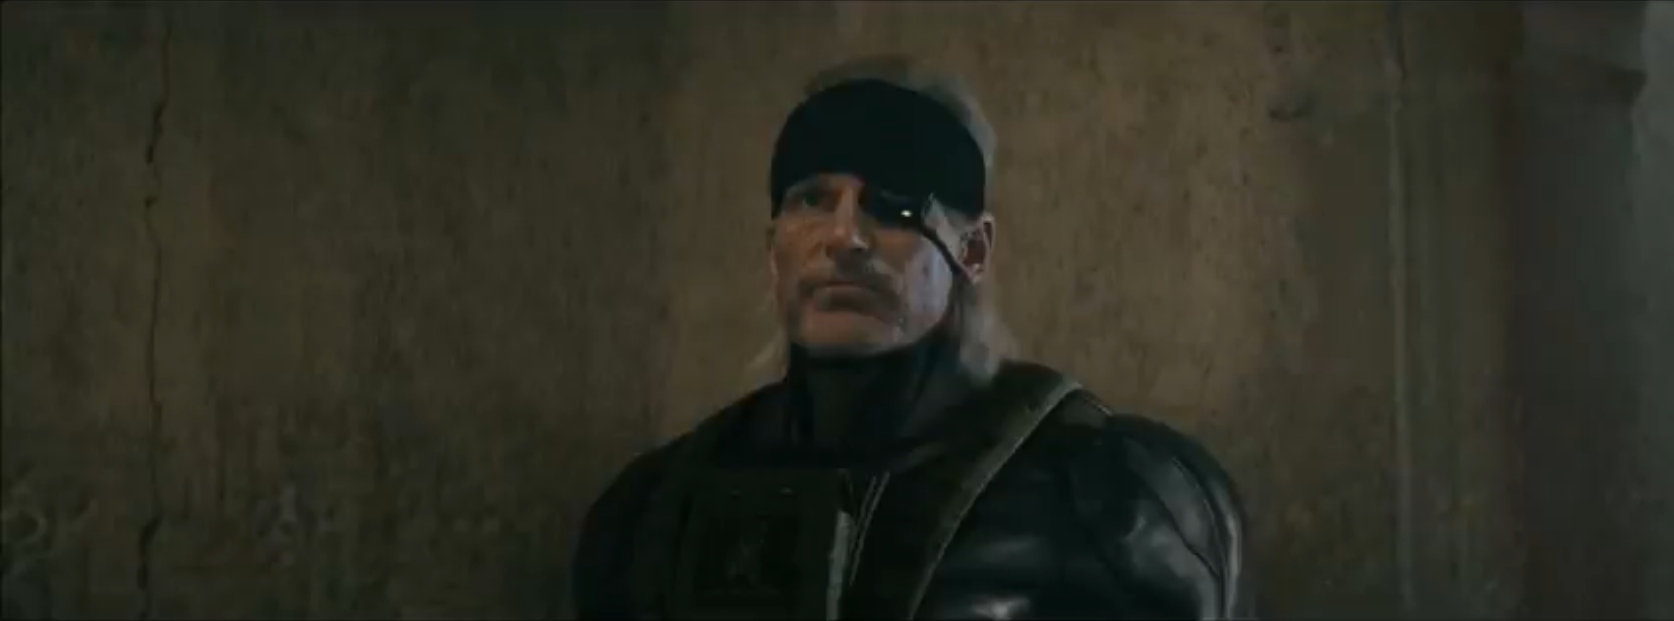 SOLID SNAKE MICHAEL